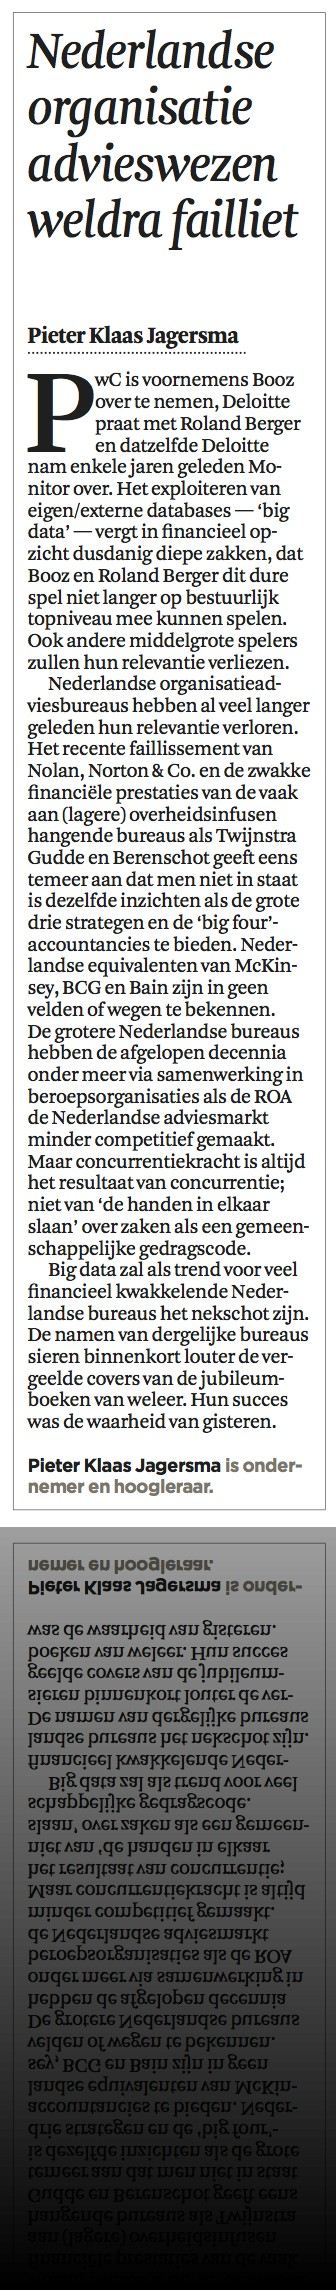 ArticleHetFinancieeleDagblad07112013.jpg